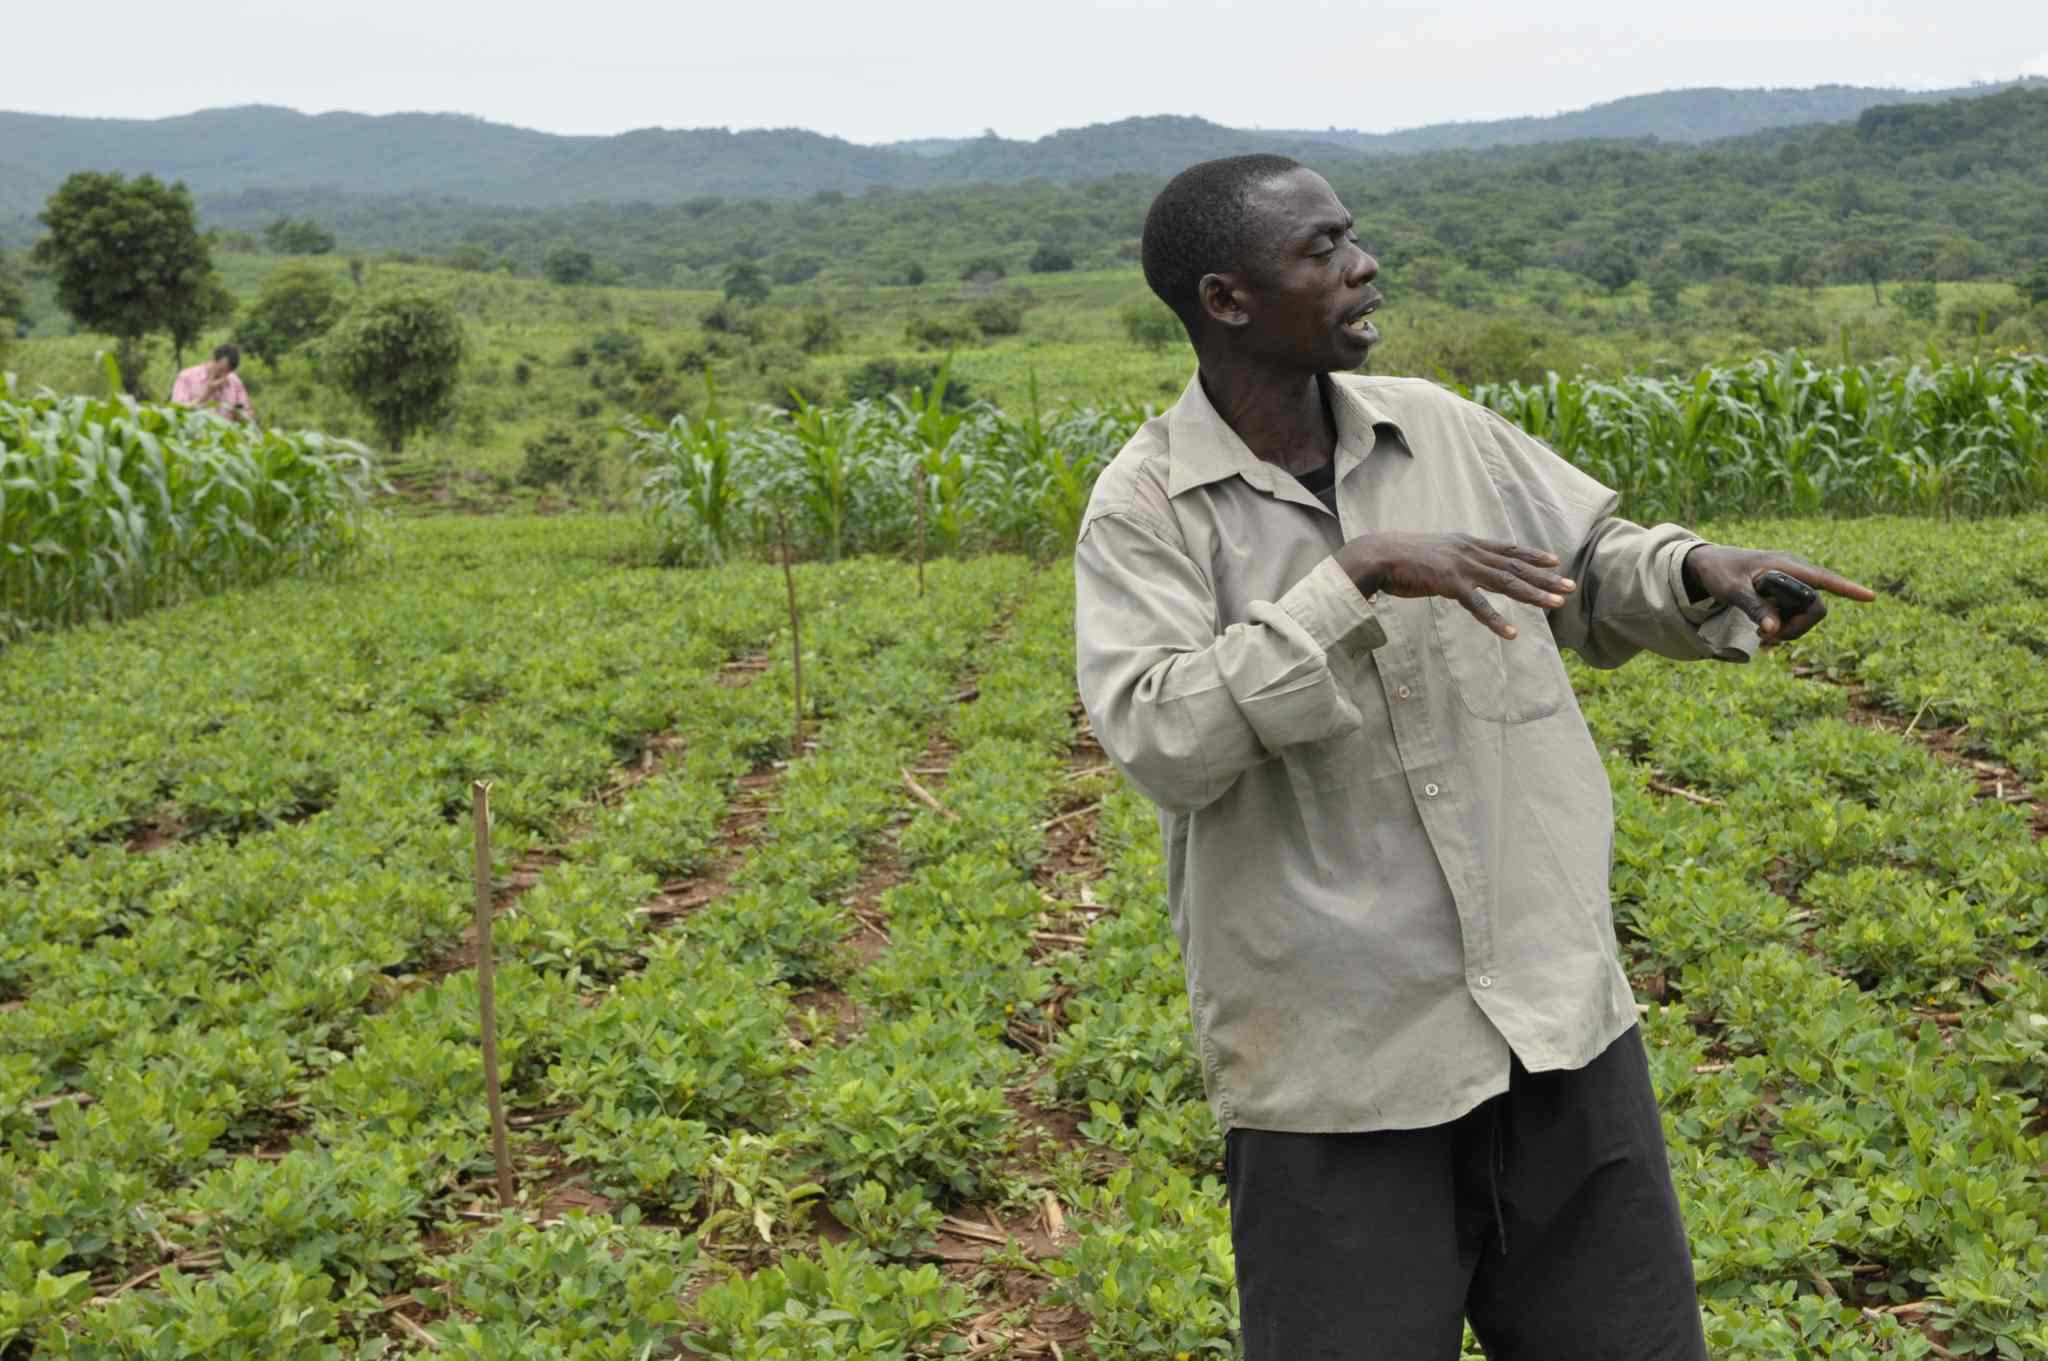 Malawi farmer Thomas Nkhunda has seen dramatic improvements in his farm's performance since adopting conservation agriculture.